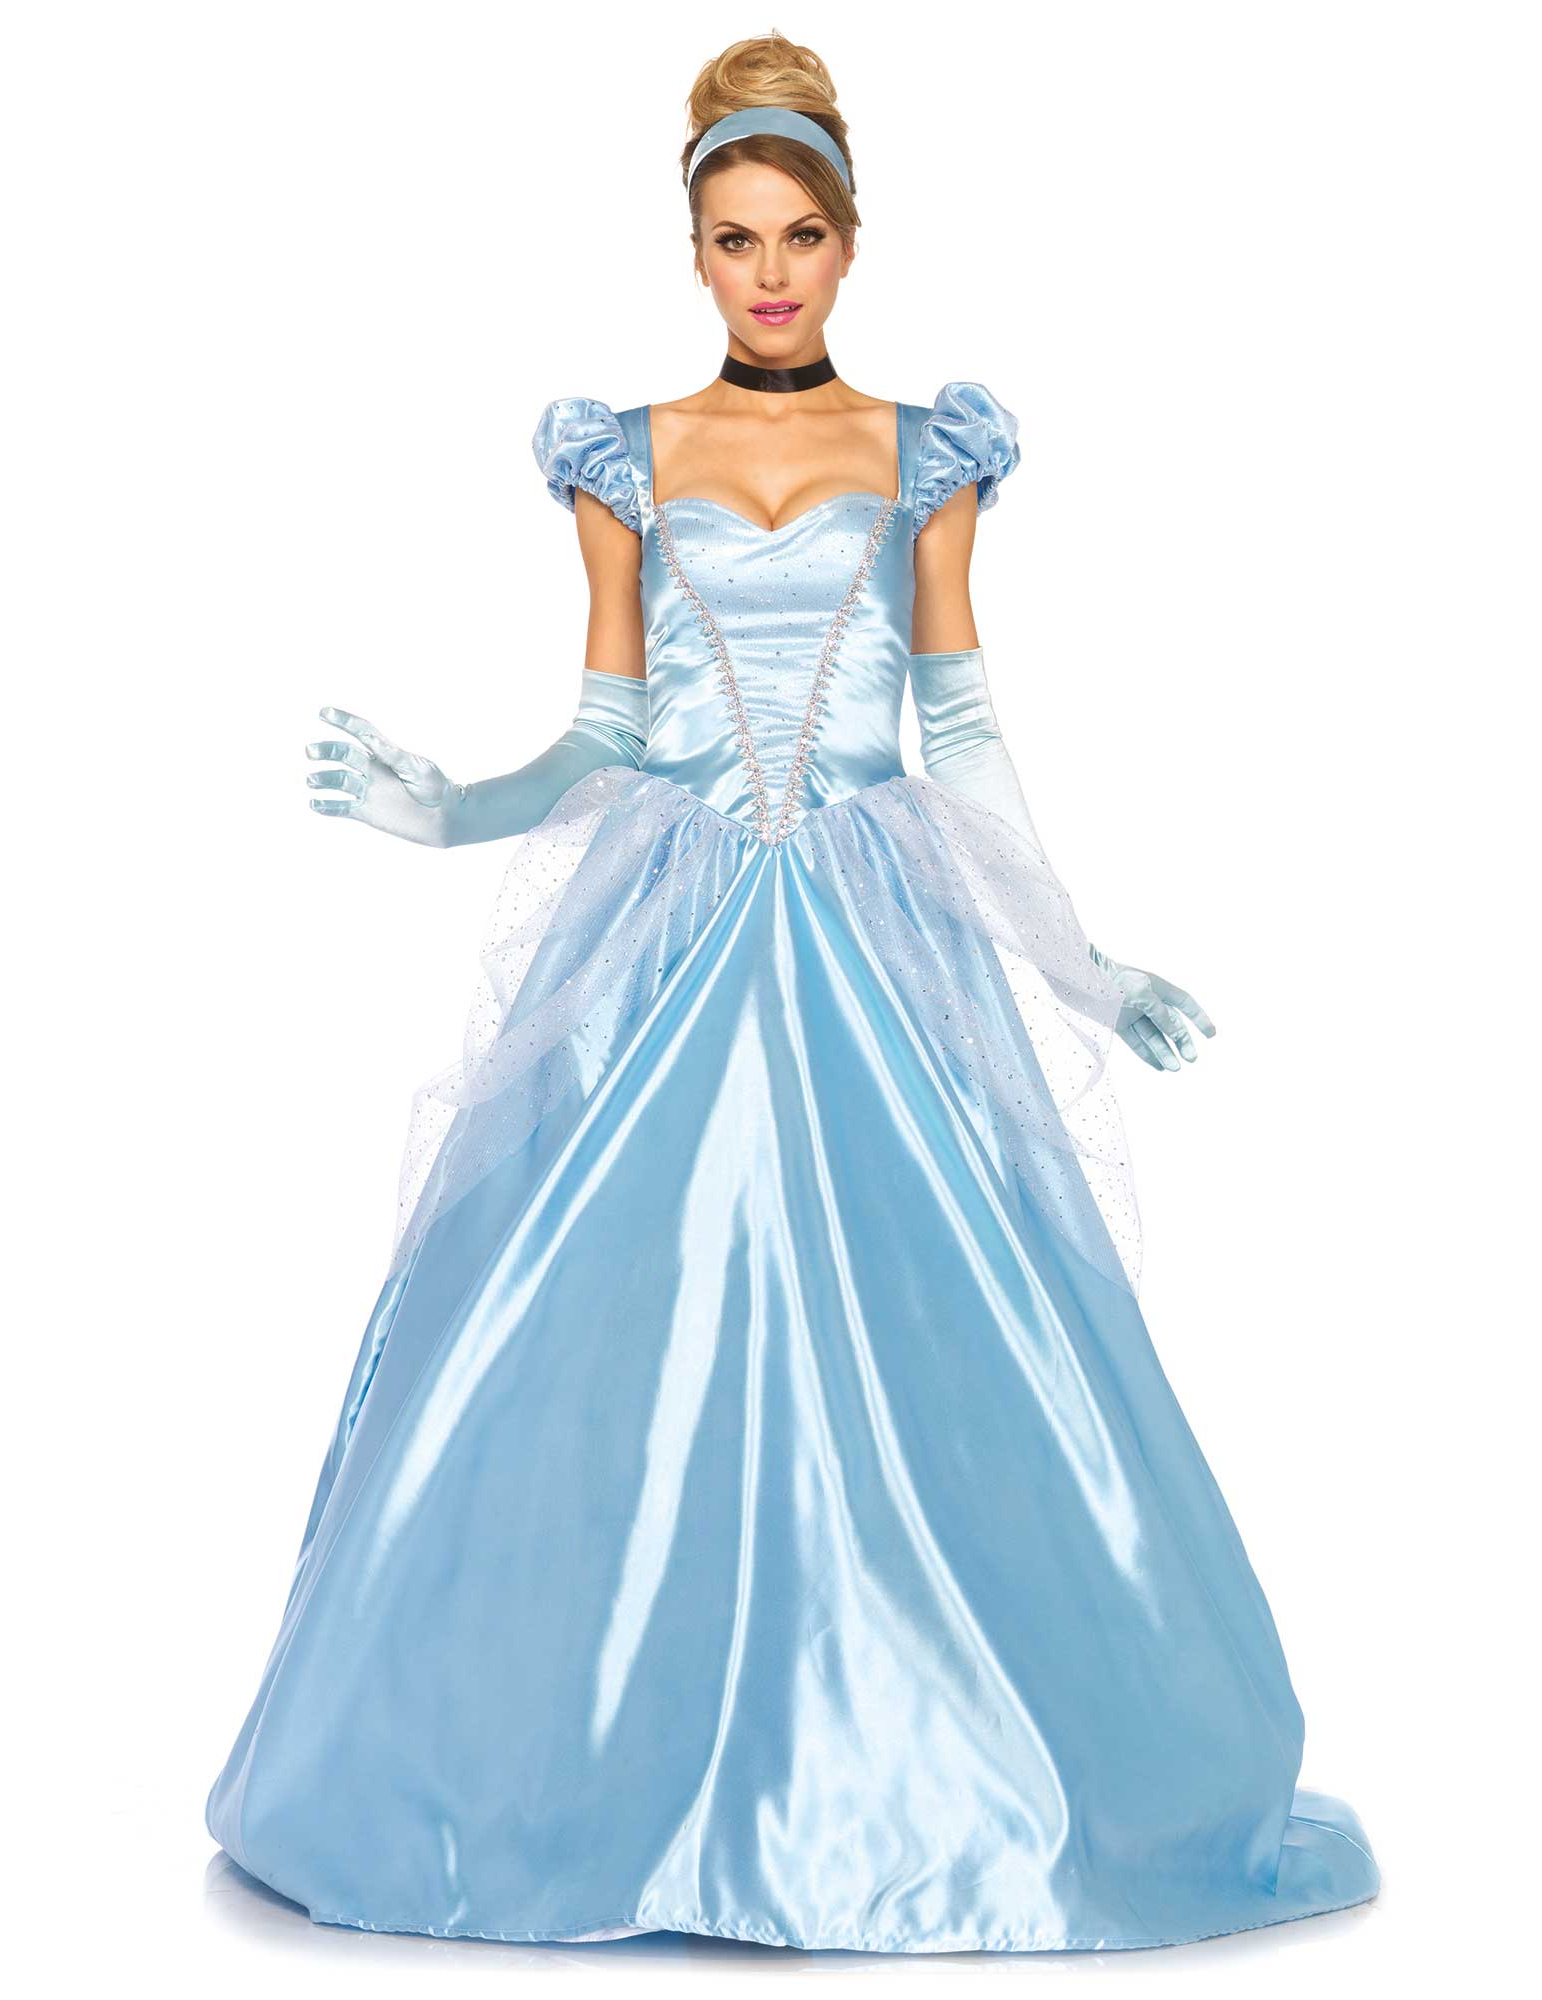 Amazonfr : robe princesse disney adulte